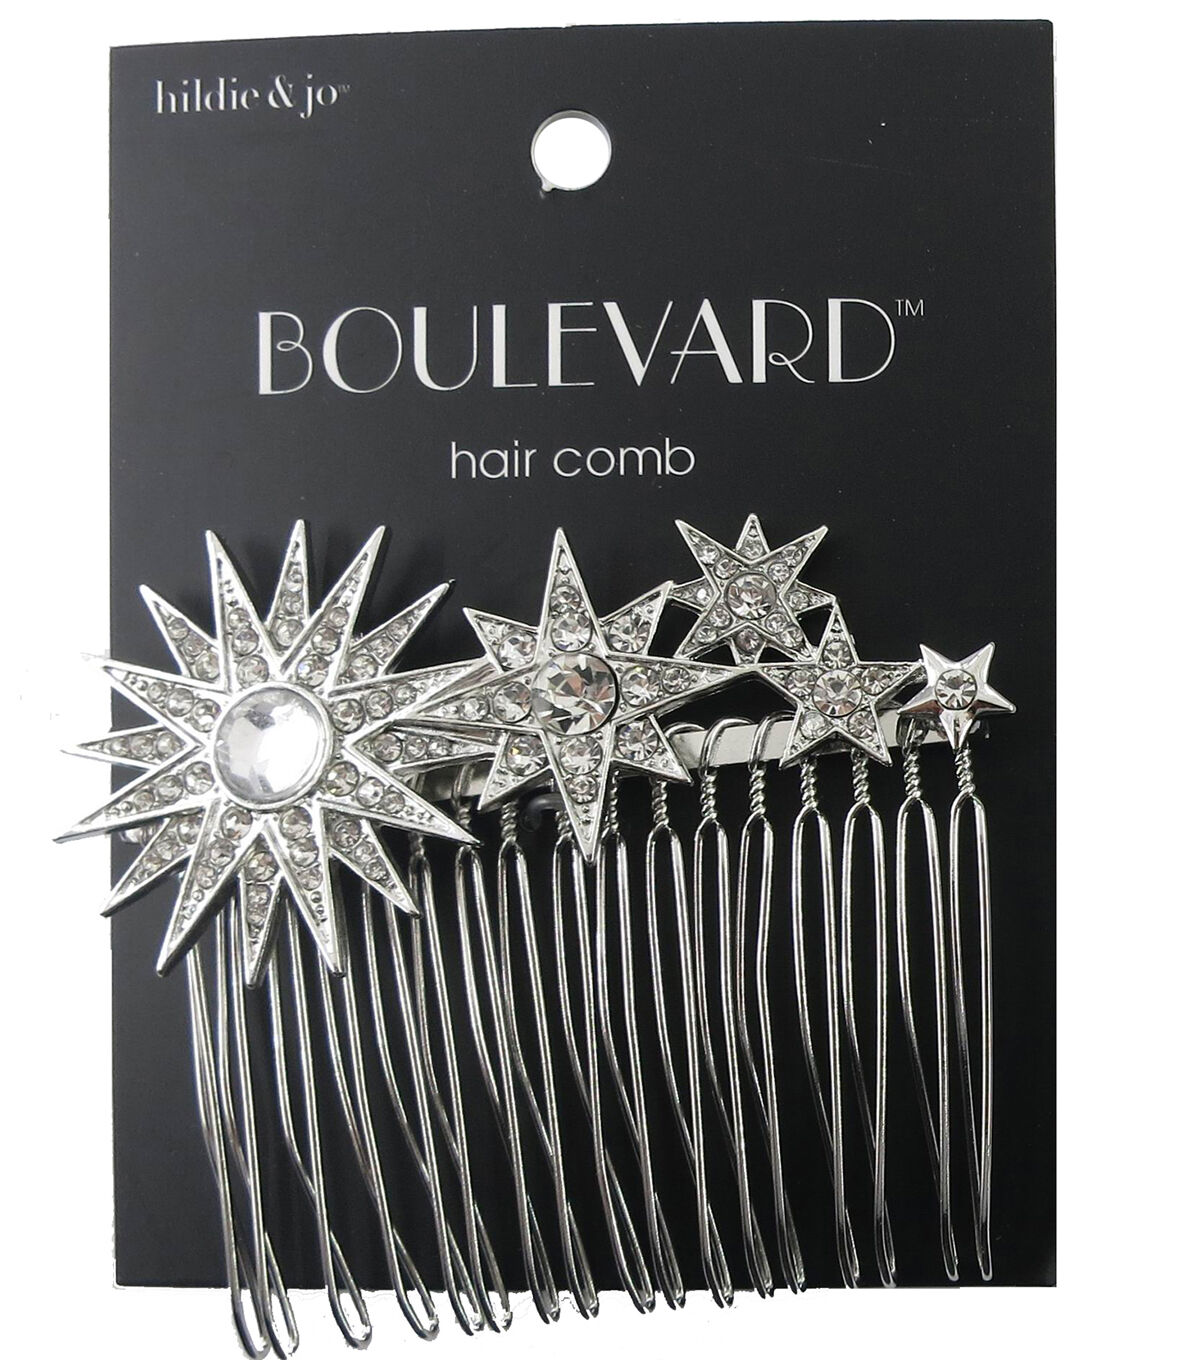 Vintage Hair Accessories: Combs, Headbands, Flowers, Scarf, Wigs hildie  jo Boulevard Silver Hair Comb - Stars with Clear Crystals $4.19 AT vintagedancer.com